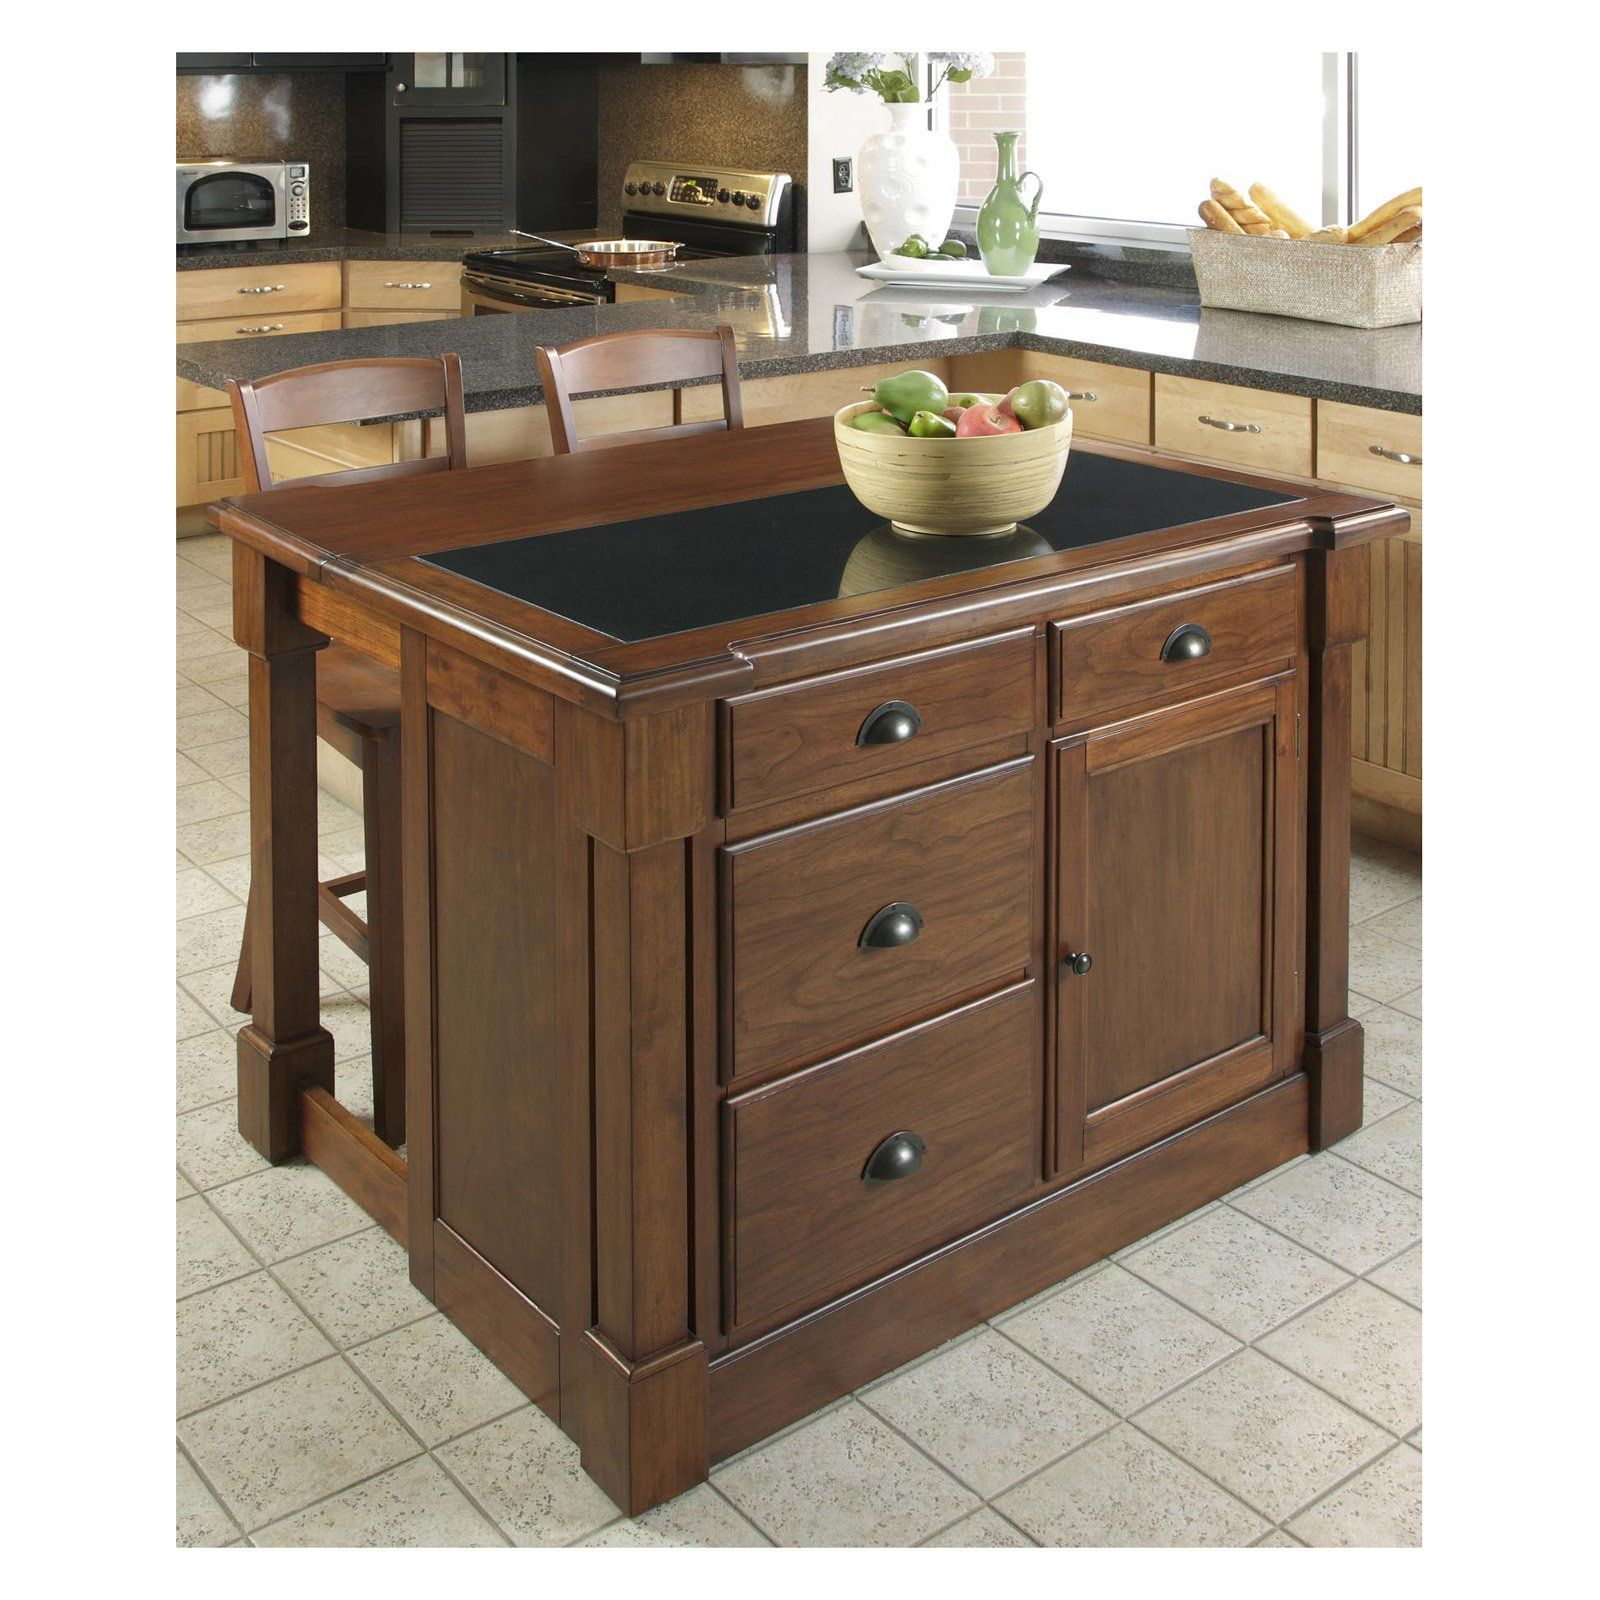 Home Styles Aspen Granite Top Kitchen Island With Two Stools And Drop Leaf 5520